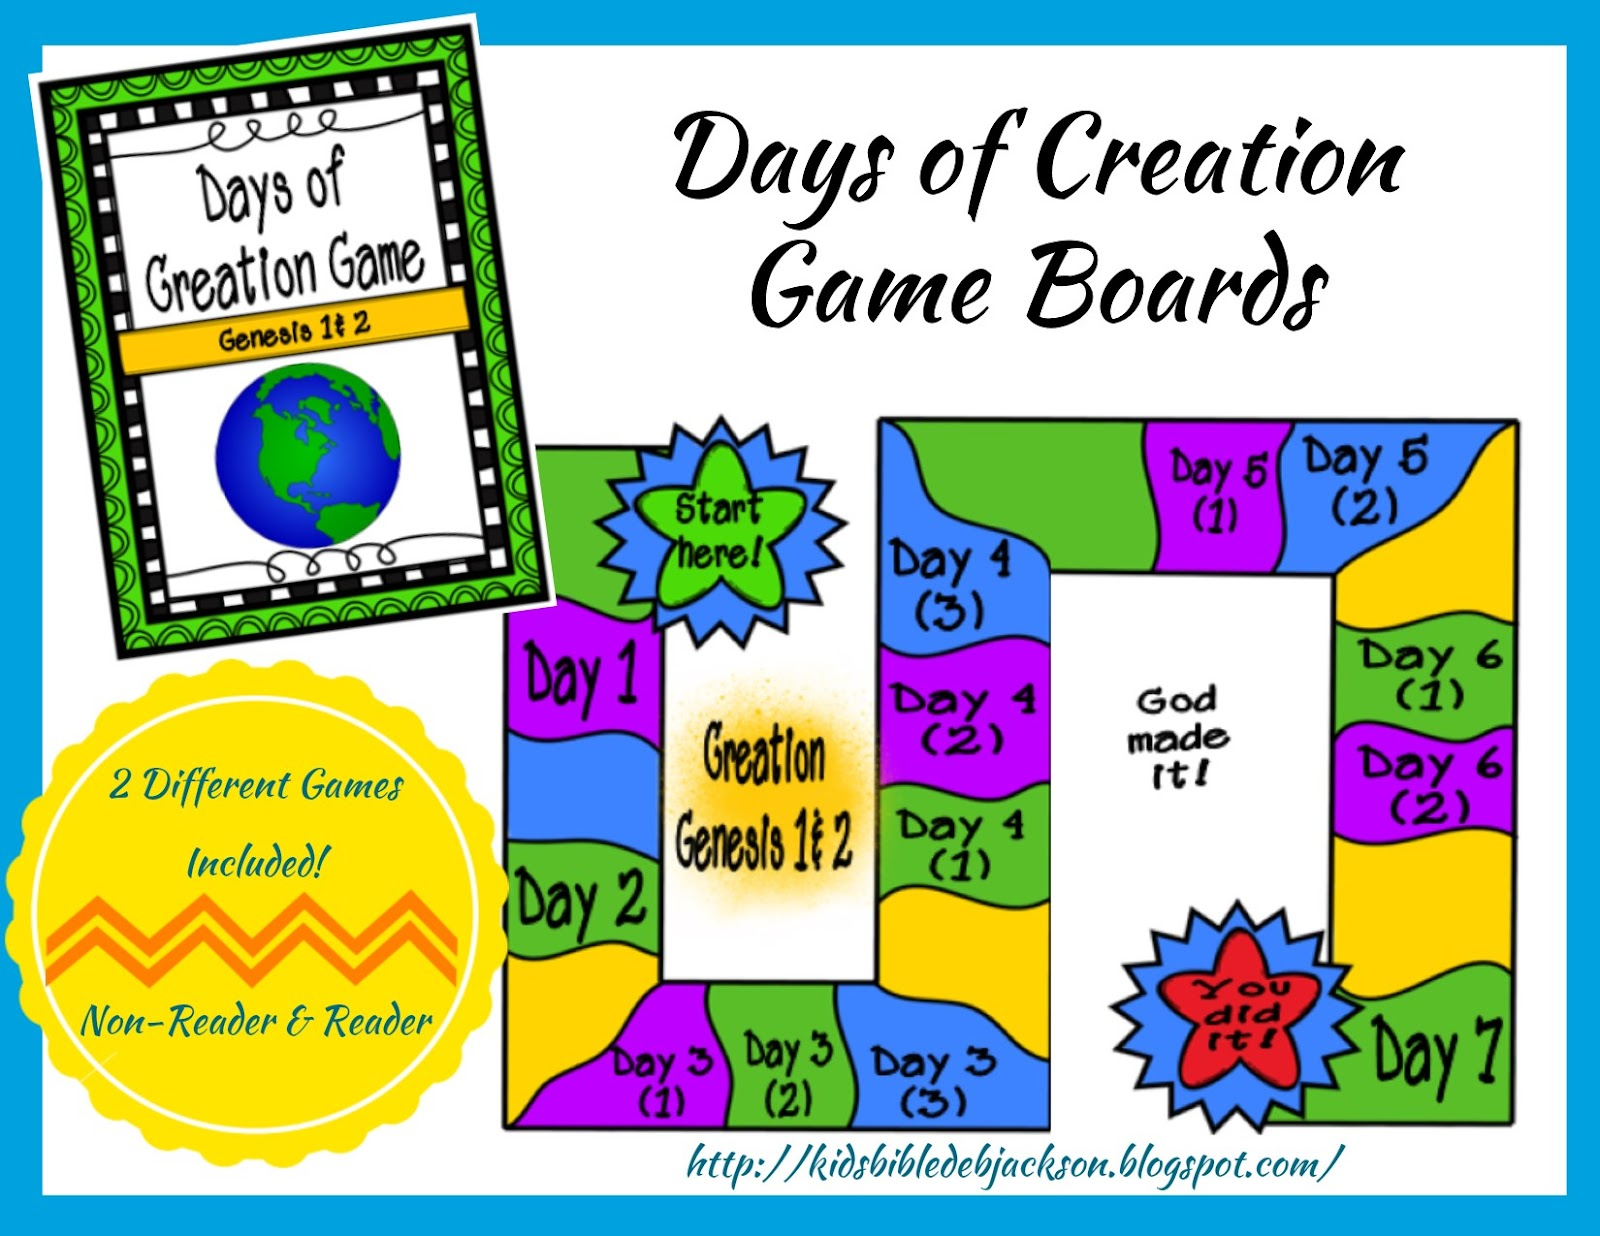 https://www.biblefunforkids.com/2015/01/the-creation-for-kids-day-3.html